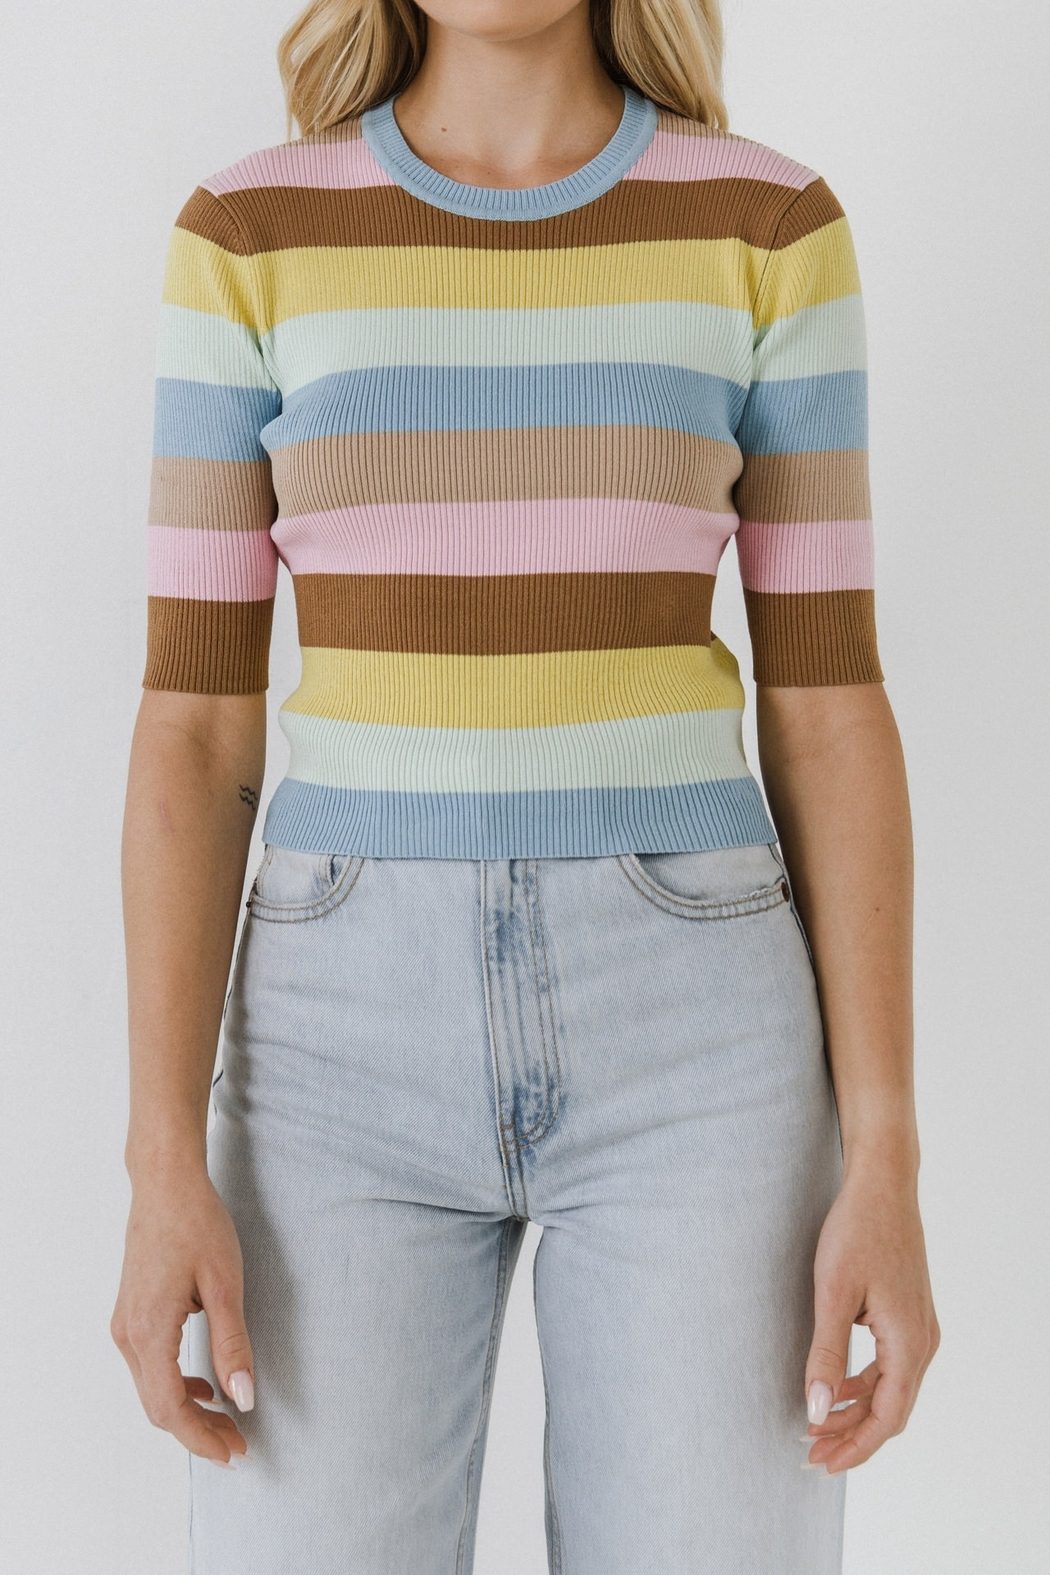 English Factory Multi Color Stripe Sweater - Front Full Image